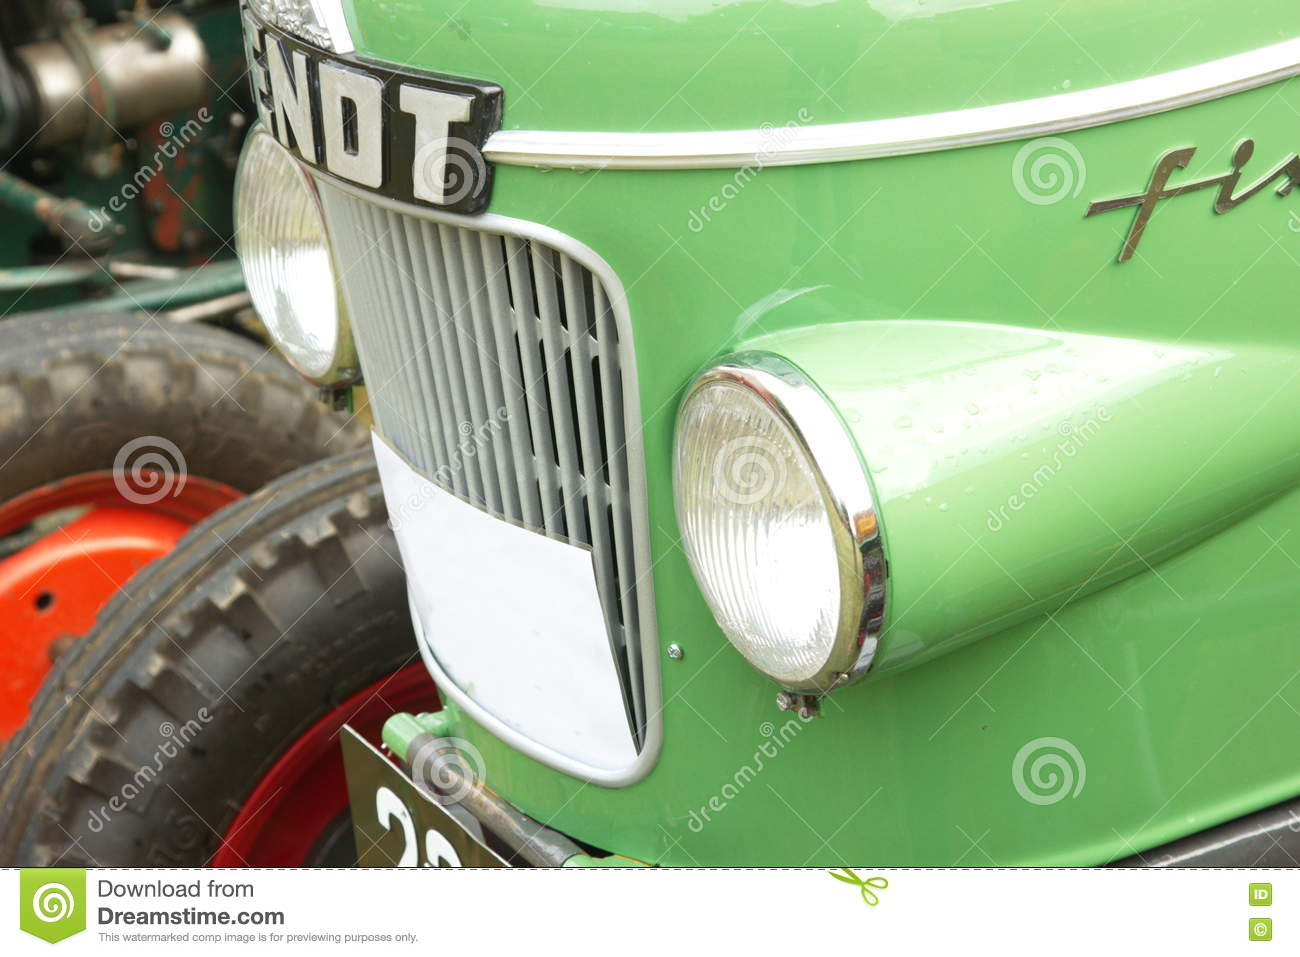 Tractor With Headlights : Front part with headlights of fendt green tractor